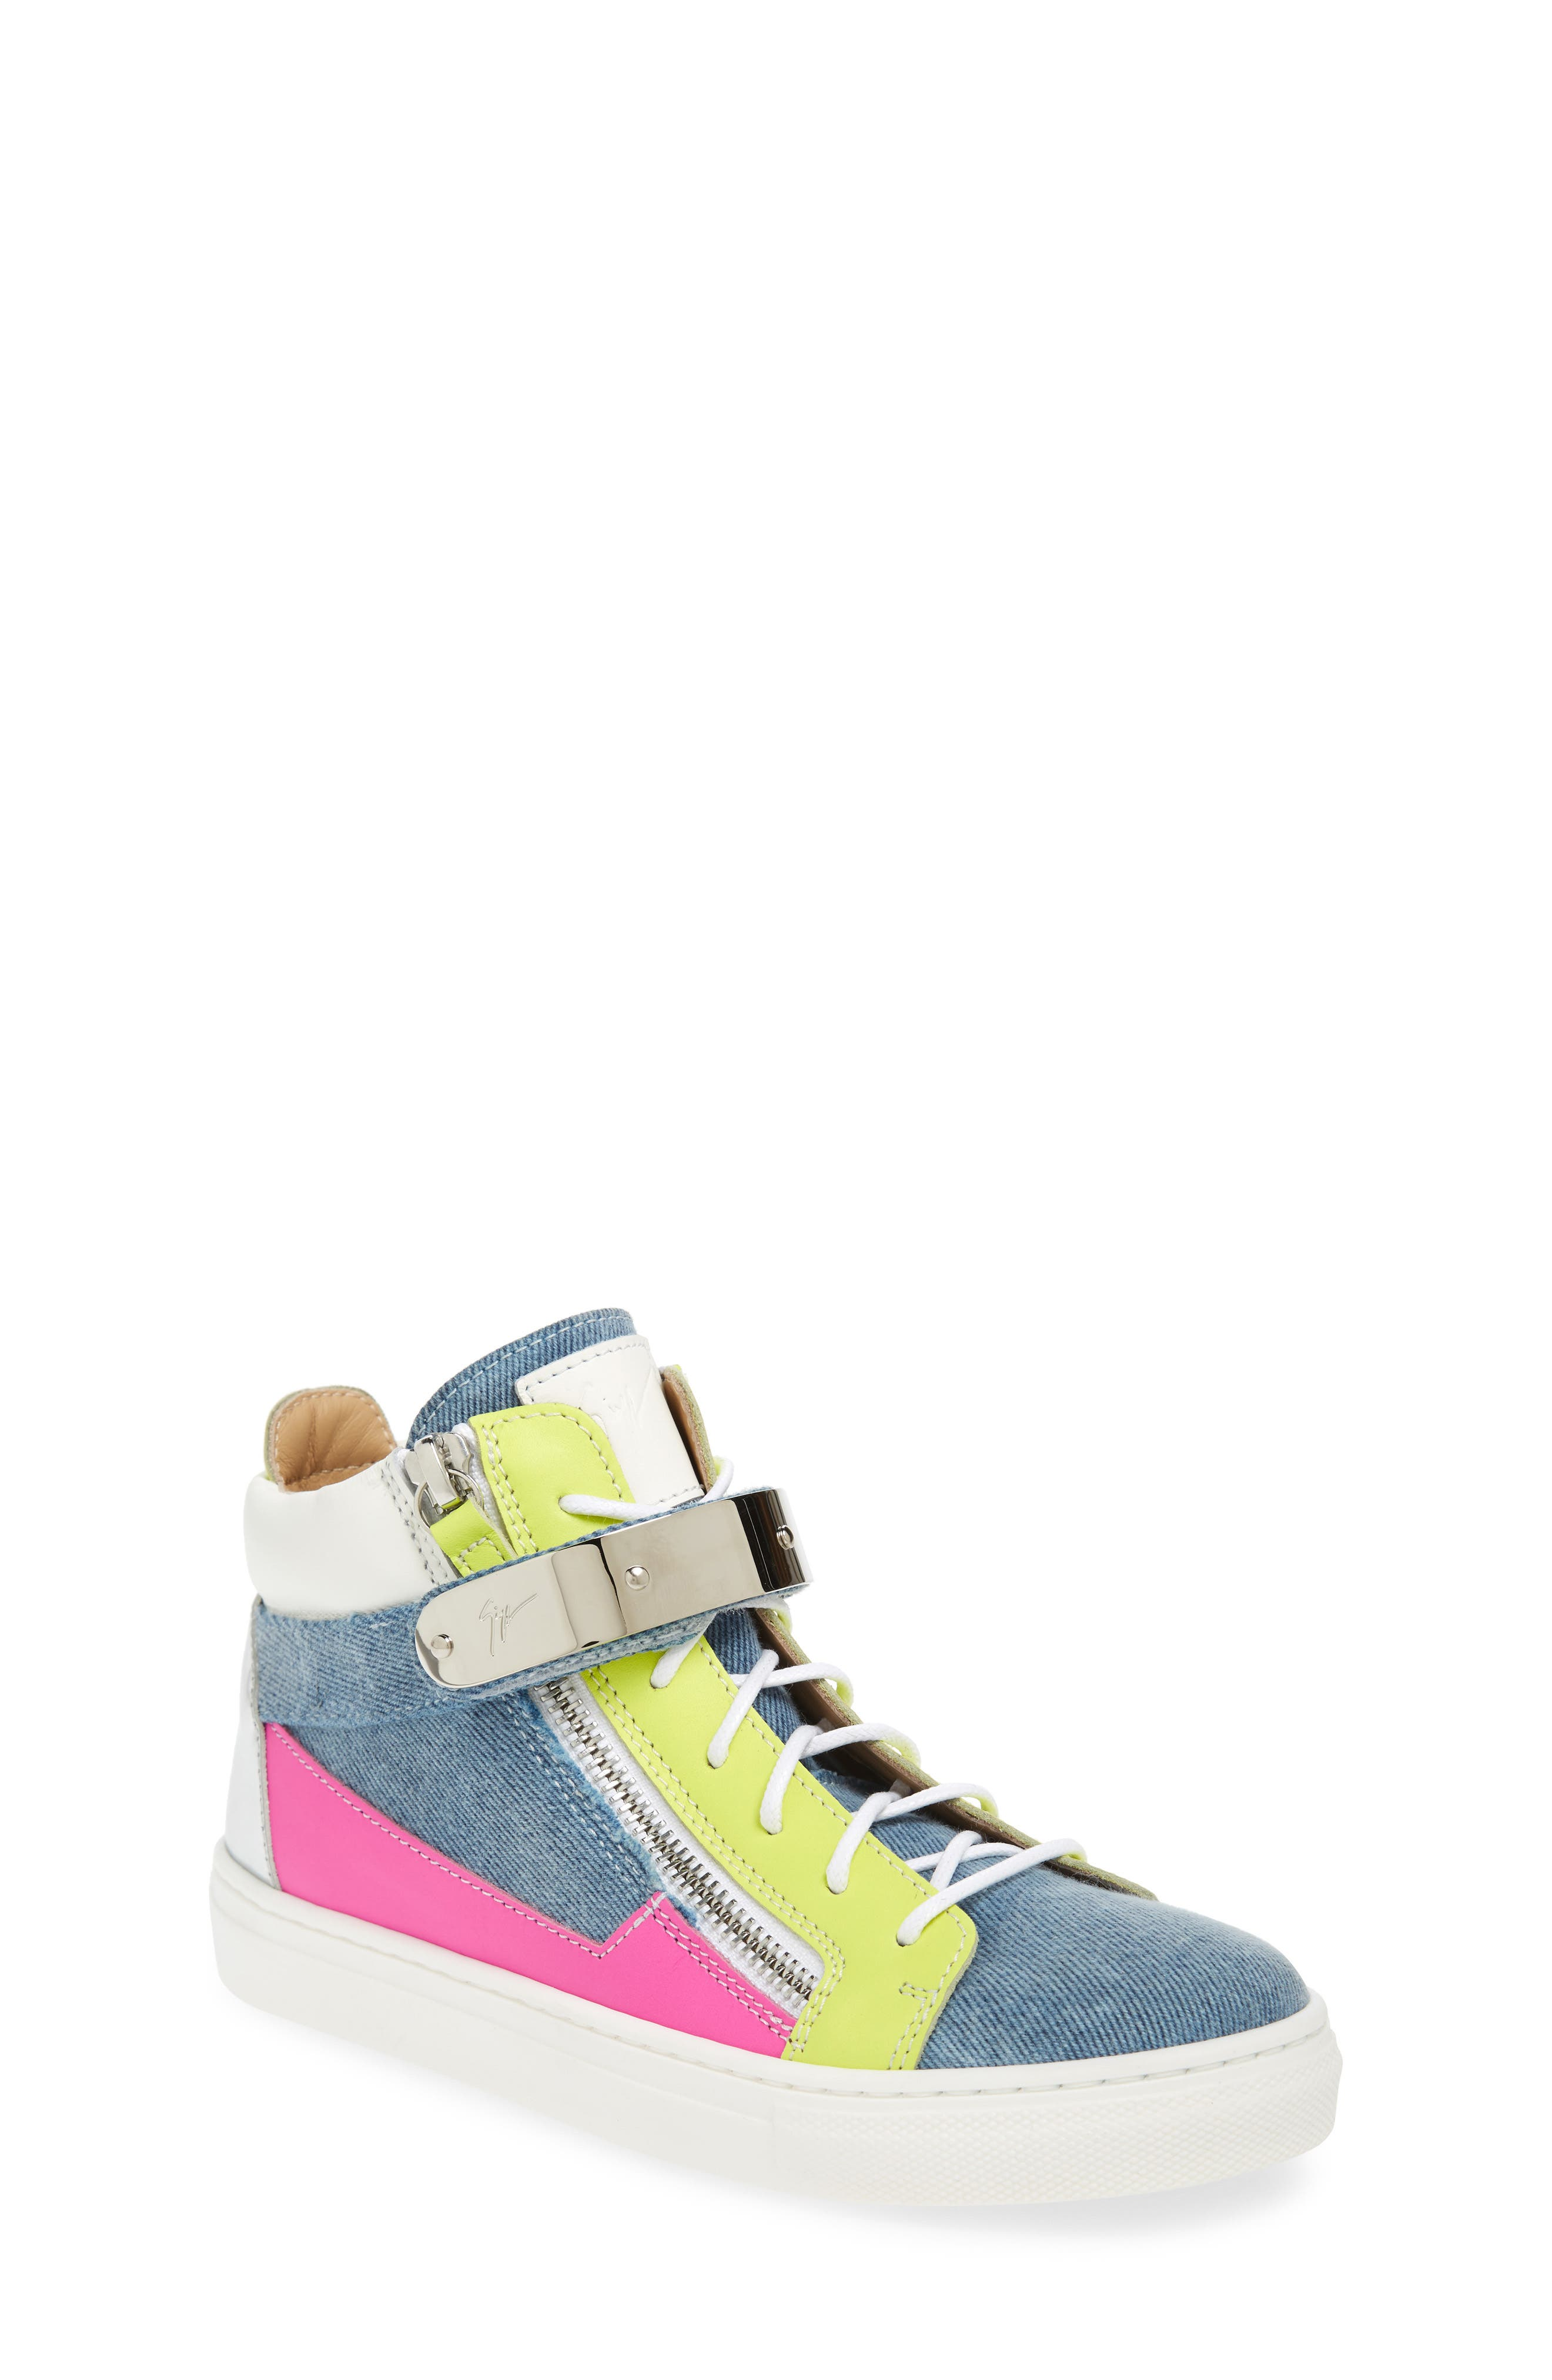 London High Top Sneaker,                             Main thumbnail 1, color,                             Multi